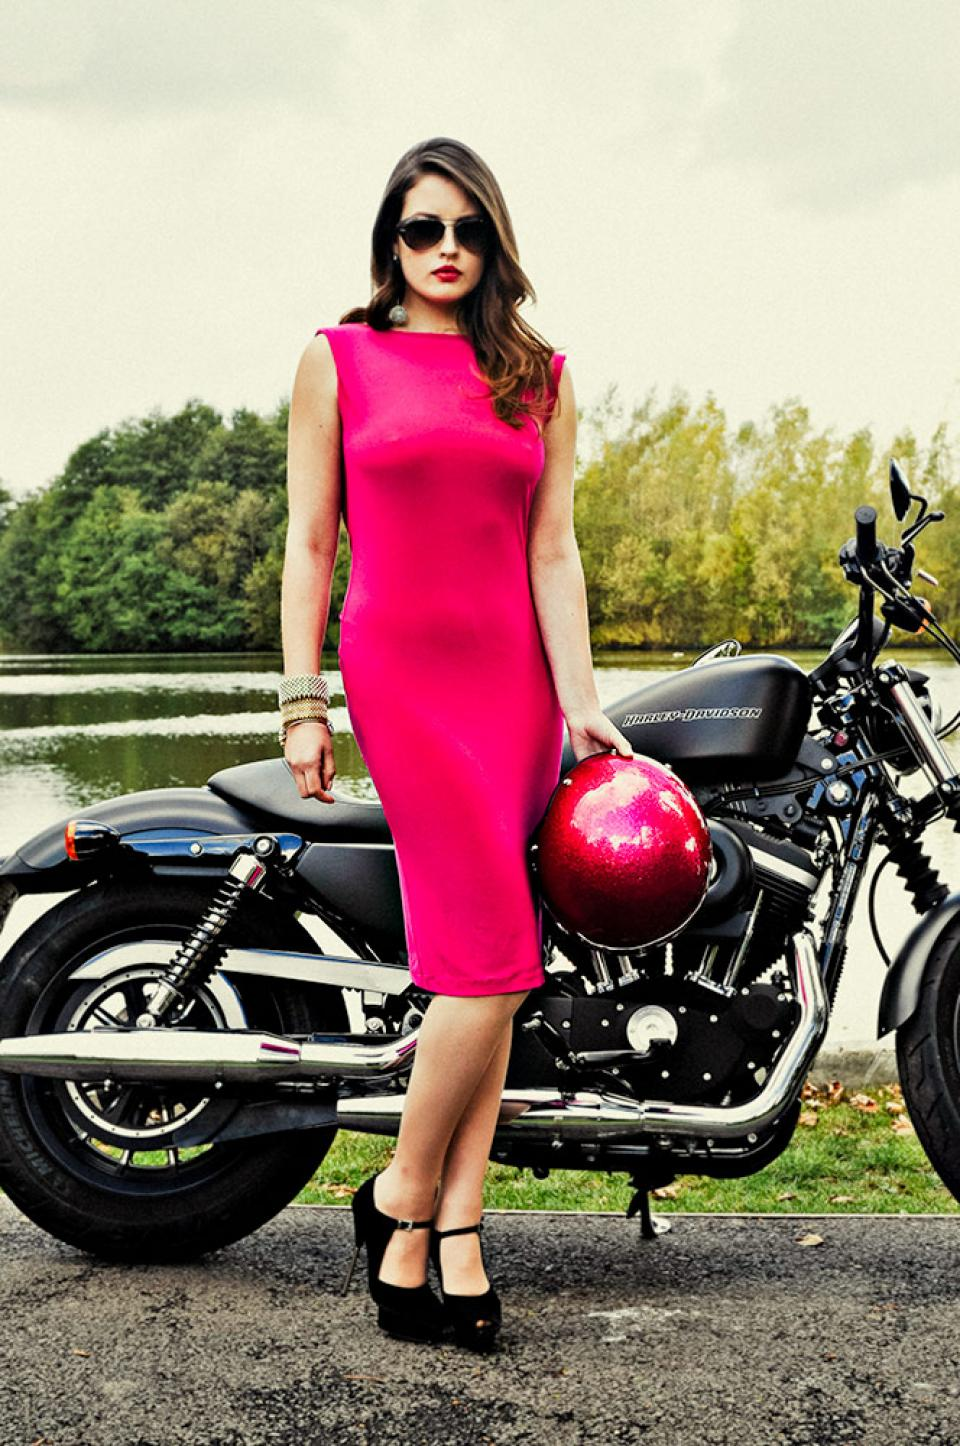 Harley Davidson Fashion Photography